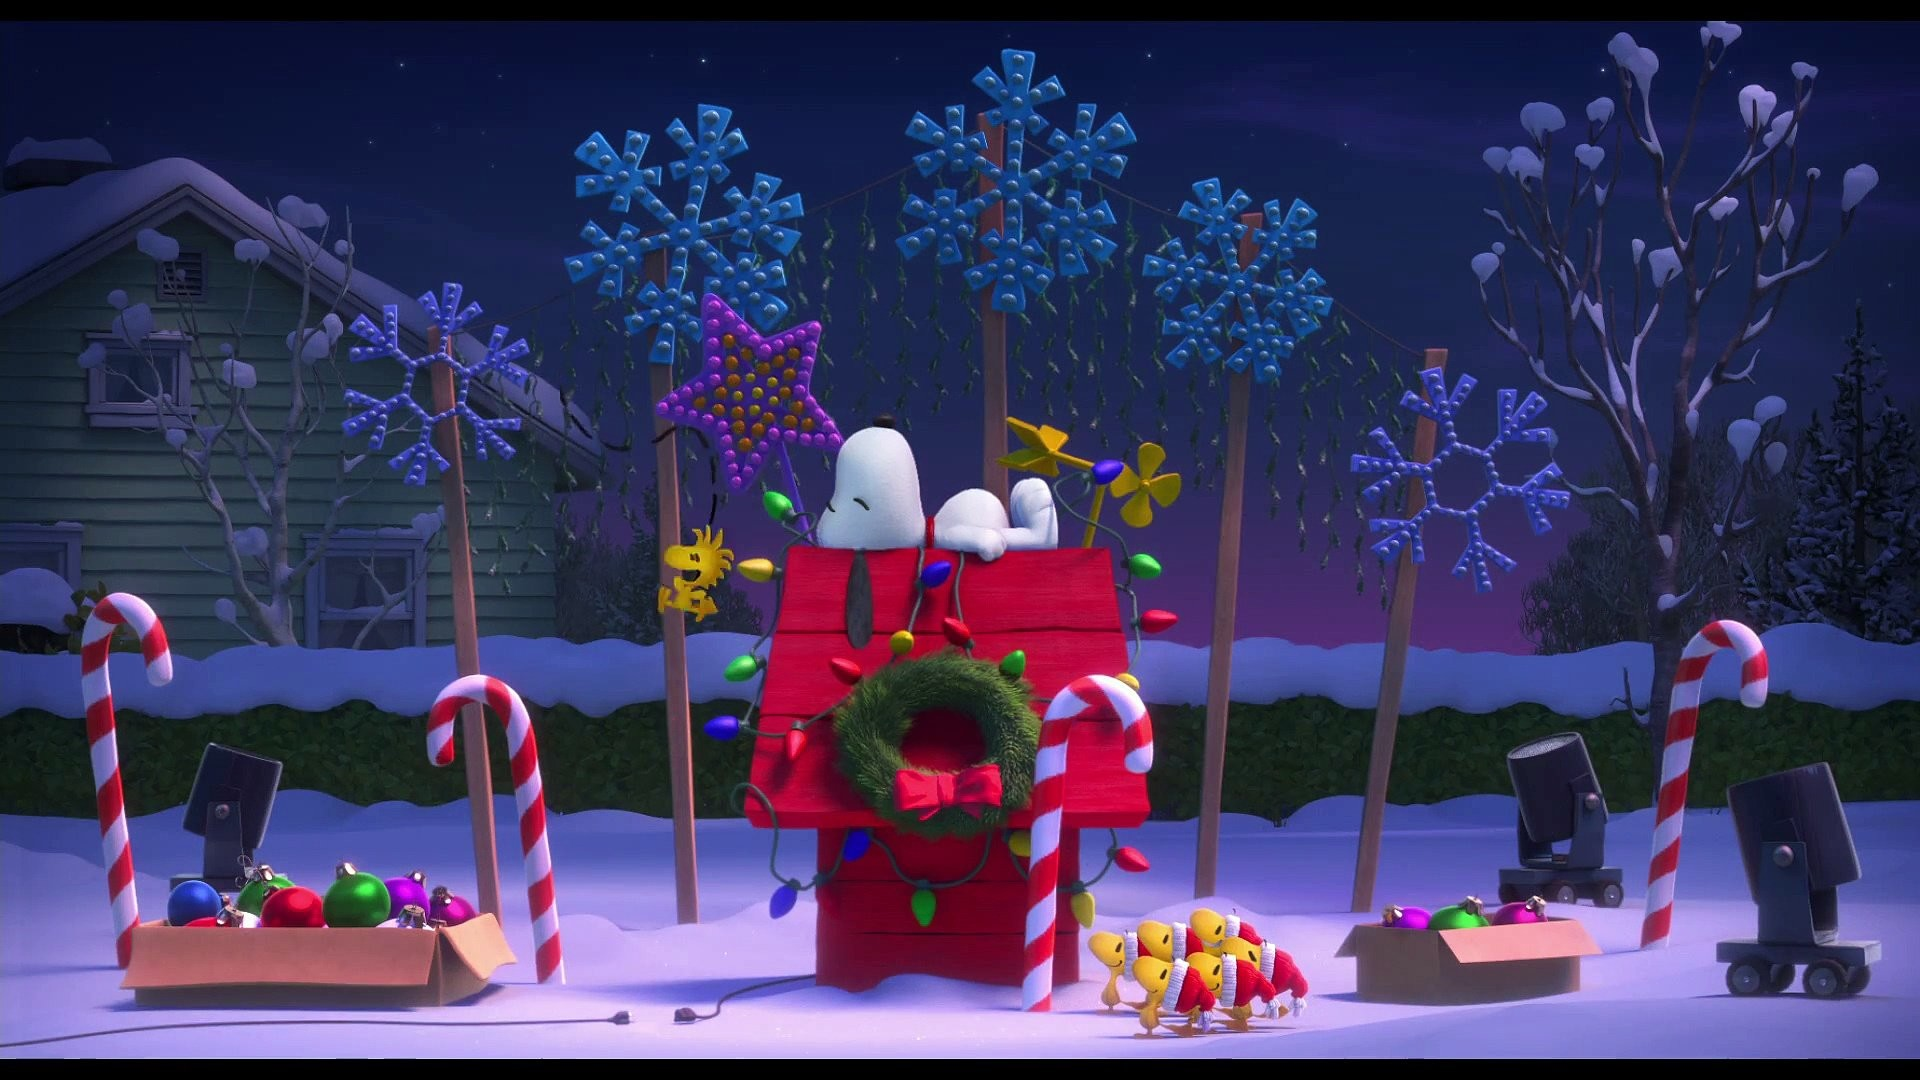 Snoopy christmas wallpaper for computer 56 images 1920x1080 peanuts movie animation family snoopy comedy cgi wallpaper 1920x1080 voltagebd Image collections